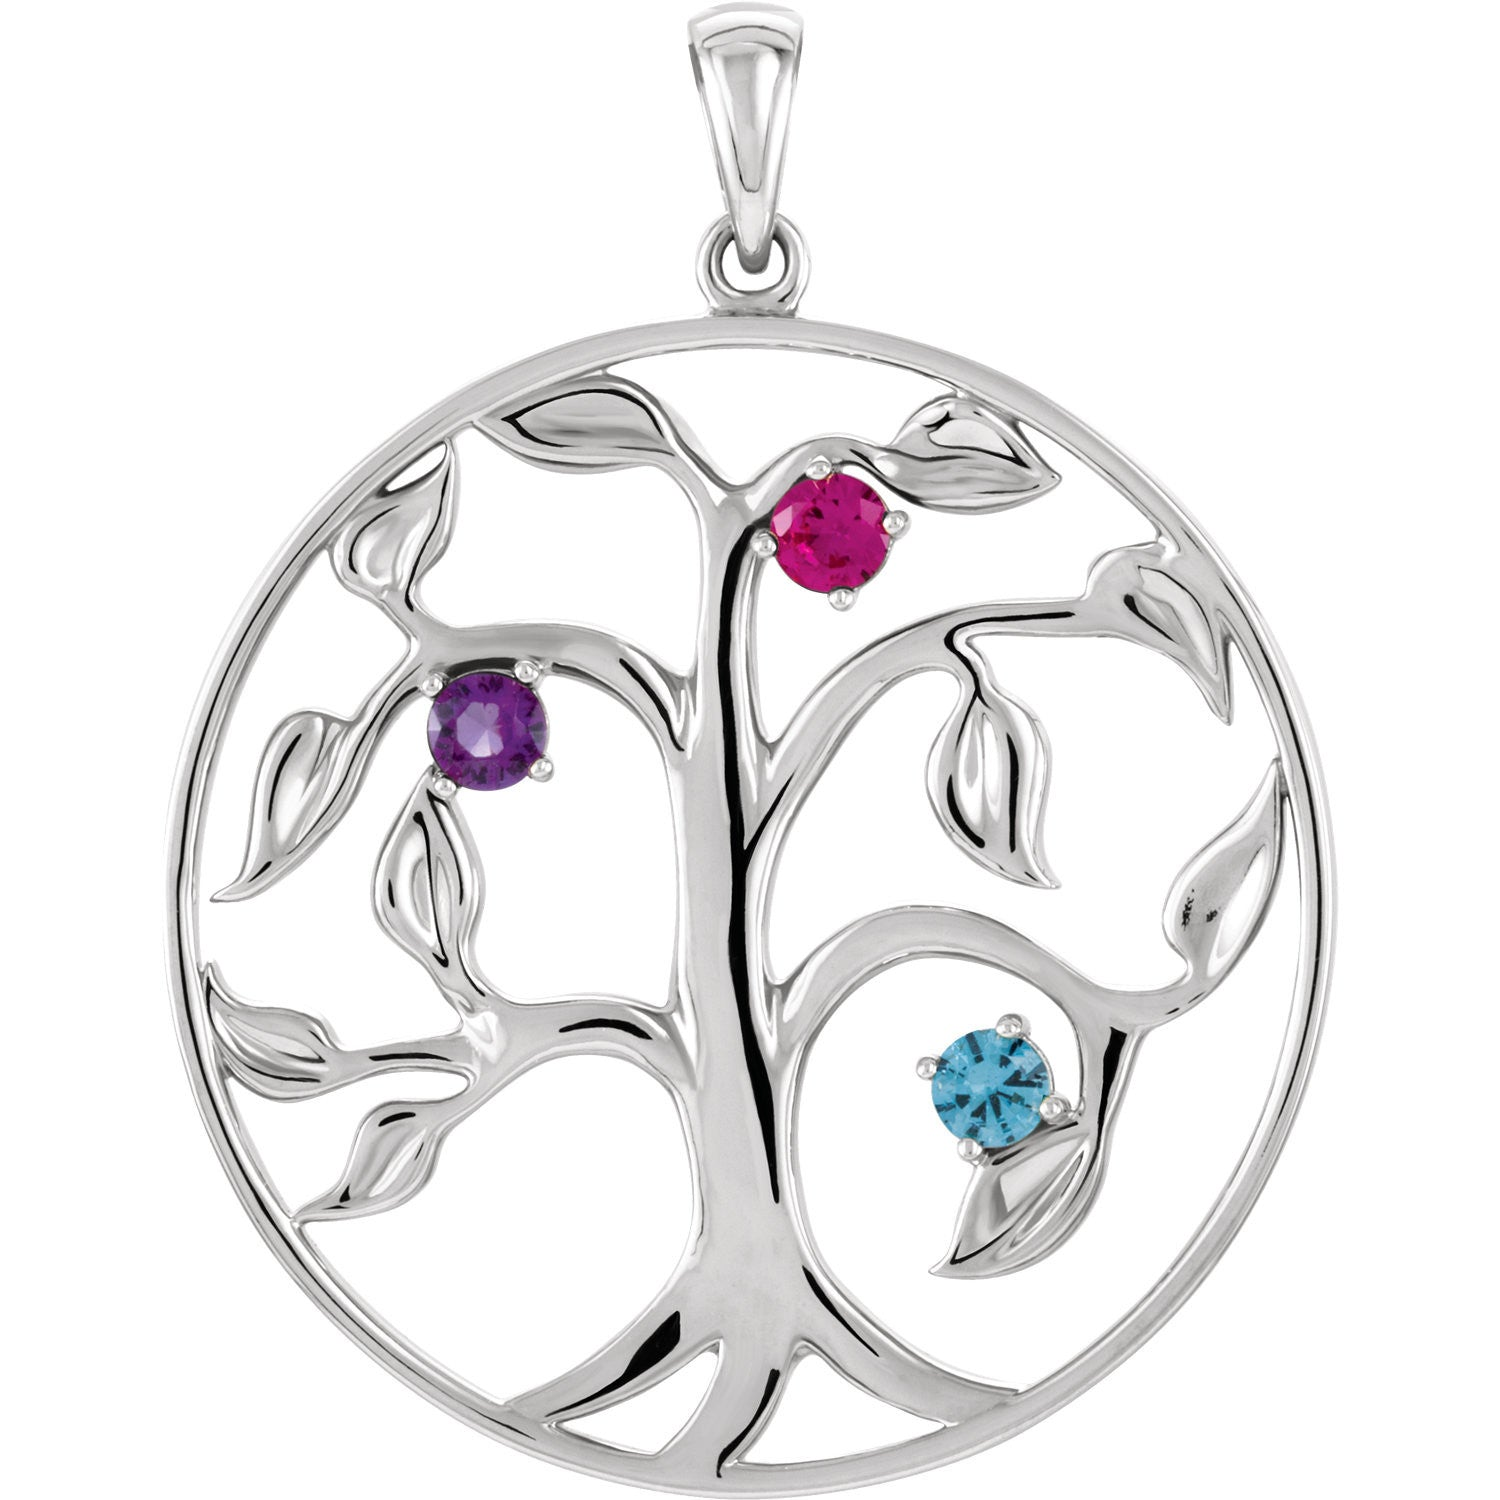 mothers necklace family day gift gifts personalized birth pendant mom pin tree swarovski mother stone